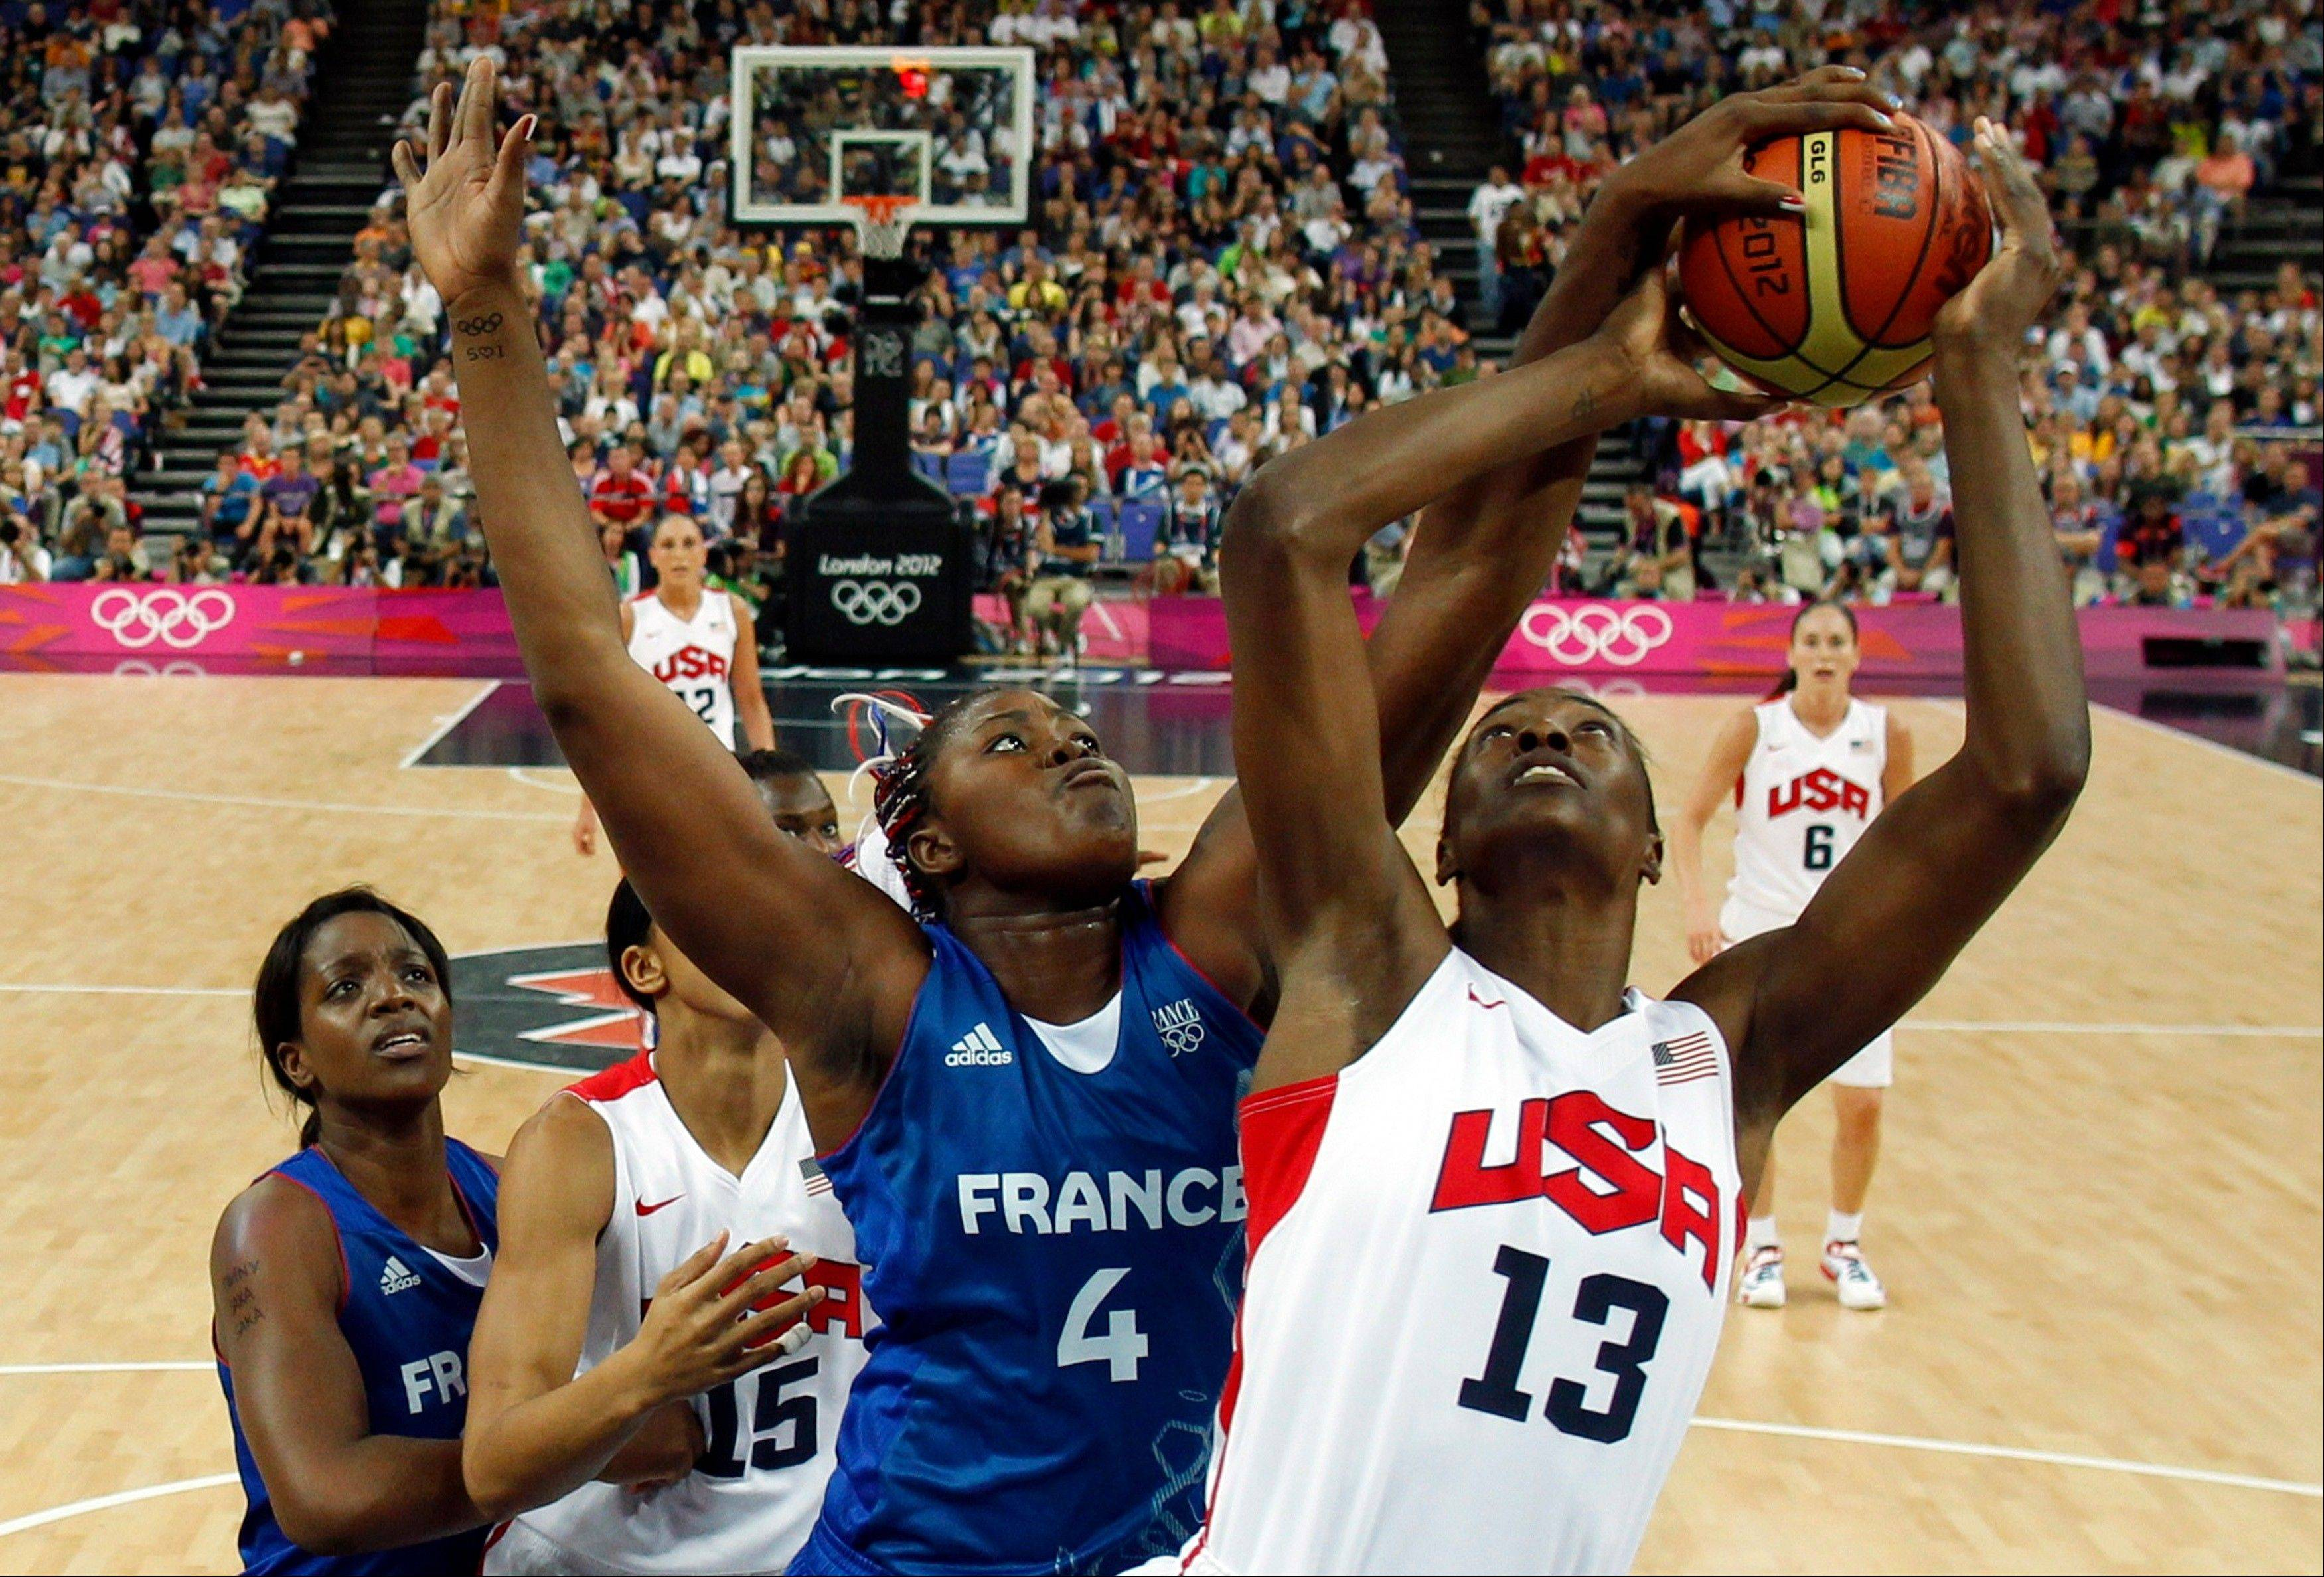 France's Isabelle Yacoubou (4) blocks the shot of Sylvia Fowles (13) of the United States during their women's gold medal basketball game at the 2012 Summer Olympics on Saturday, Aug. 11, 2012, in London.